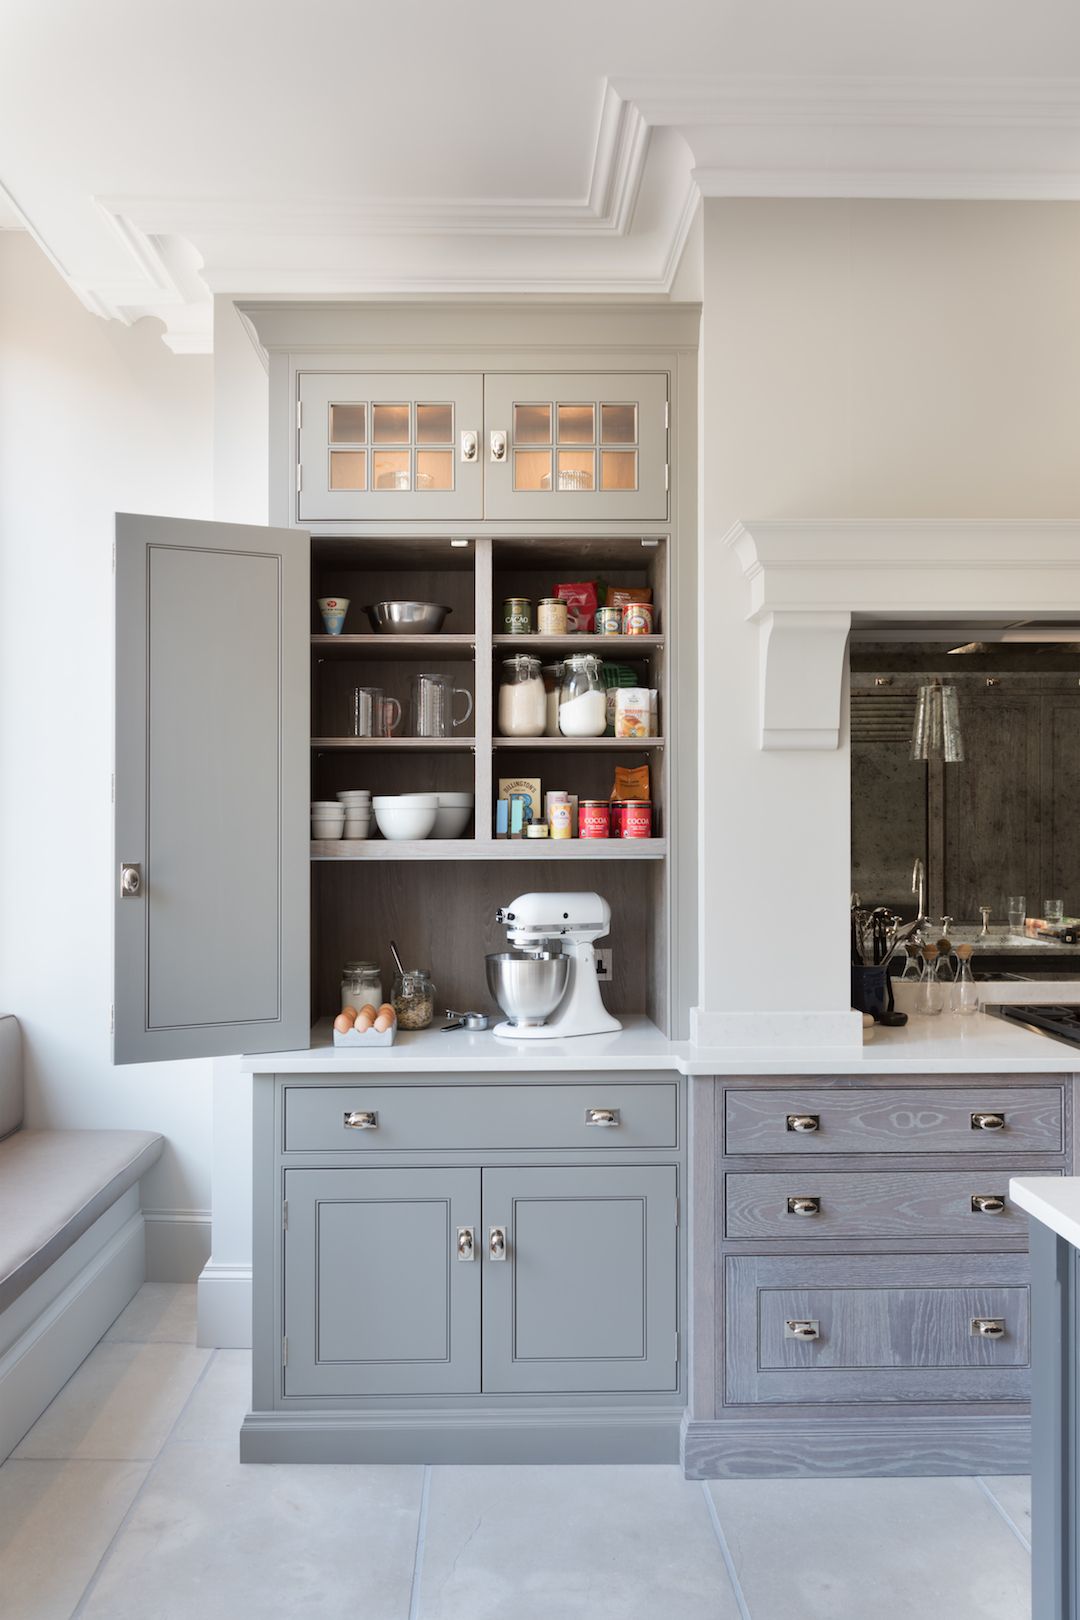 Must Have Elements For A Dream Kitchen: 5 Must Have Kitchen Accessories